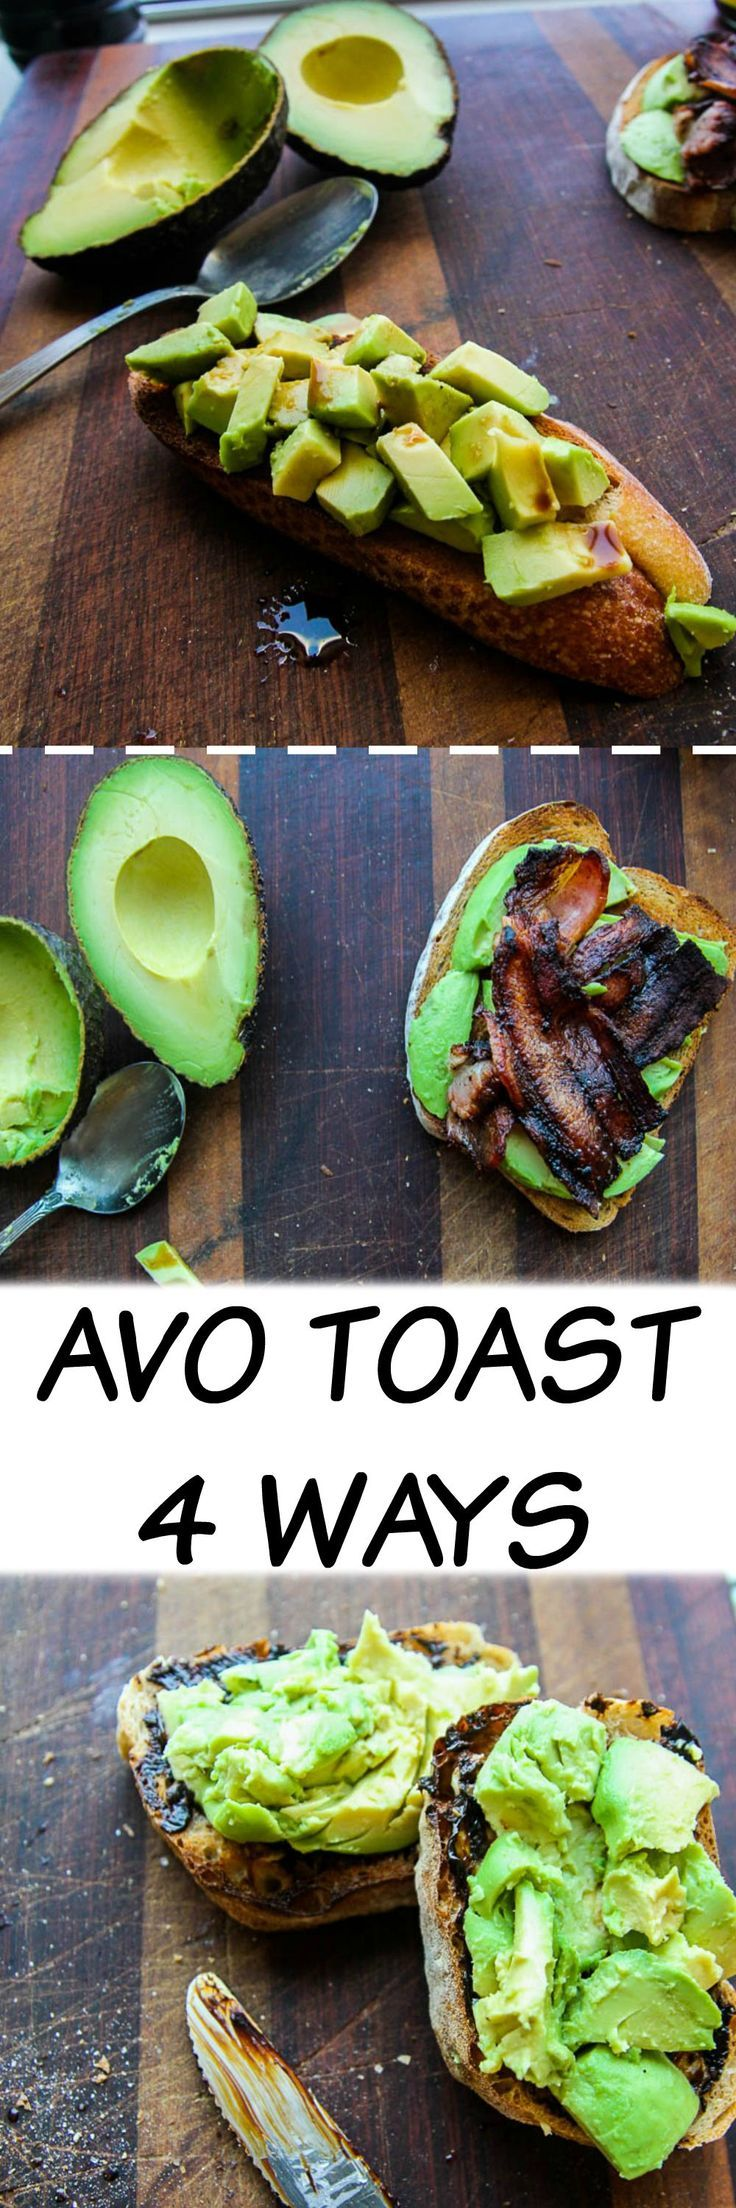 Avocado Toast | 4 Ways Seriously the best 4 ways to eat avocado toast and I bet there is one you have never heard of. Click to find out more